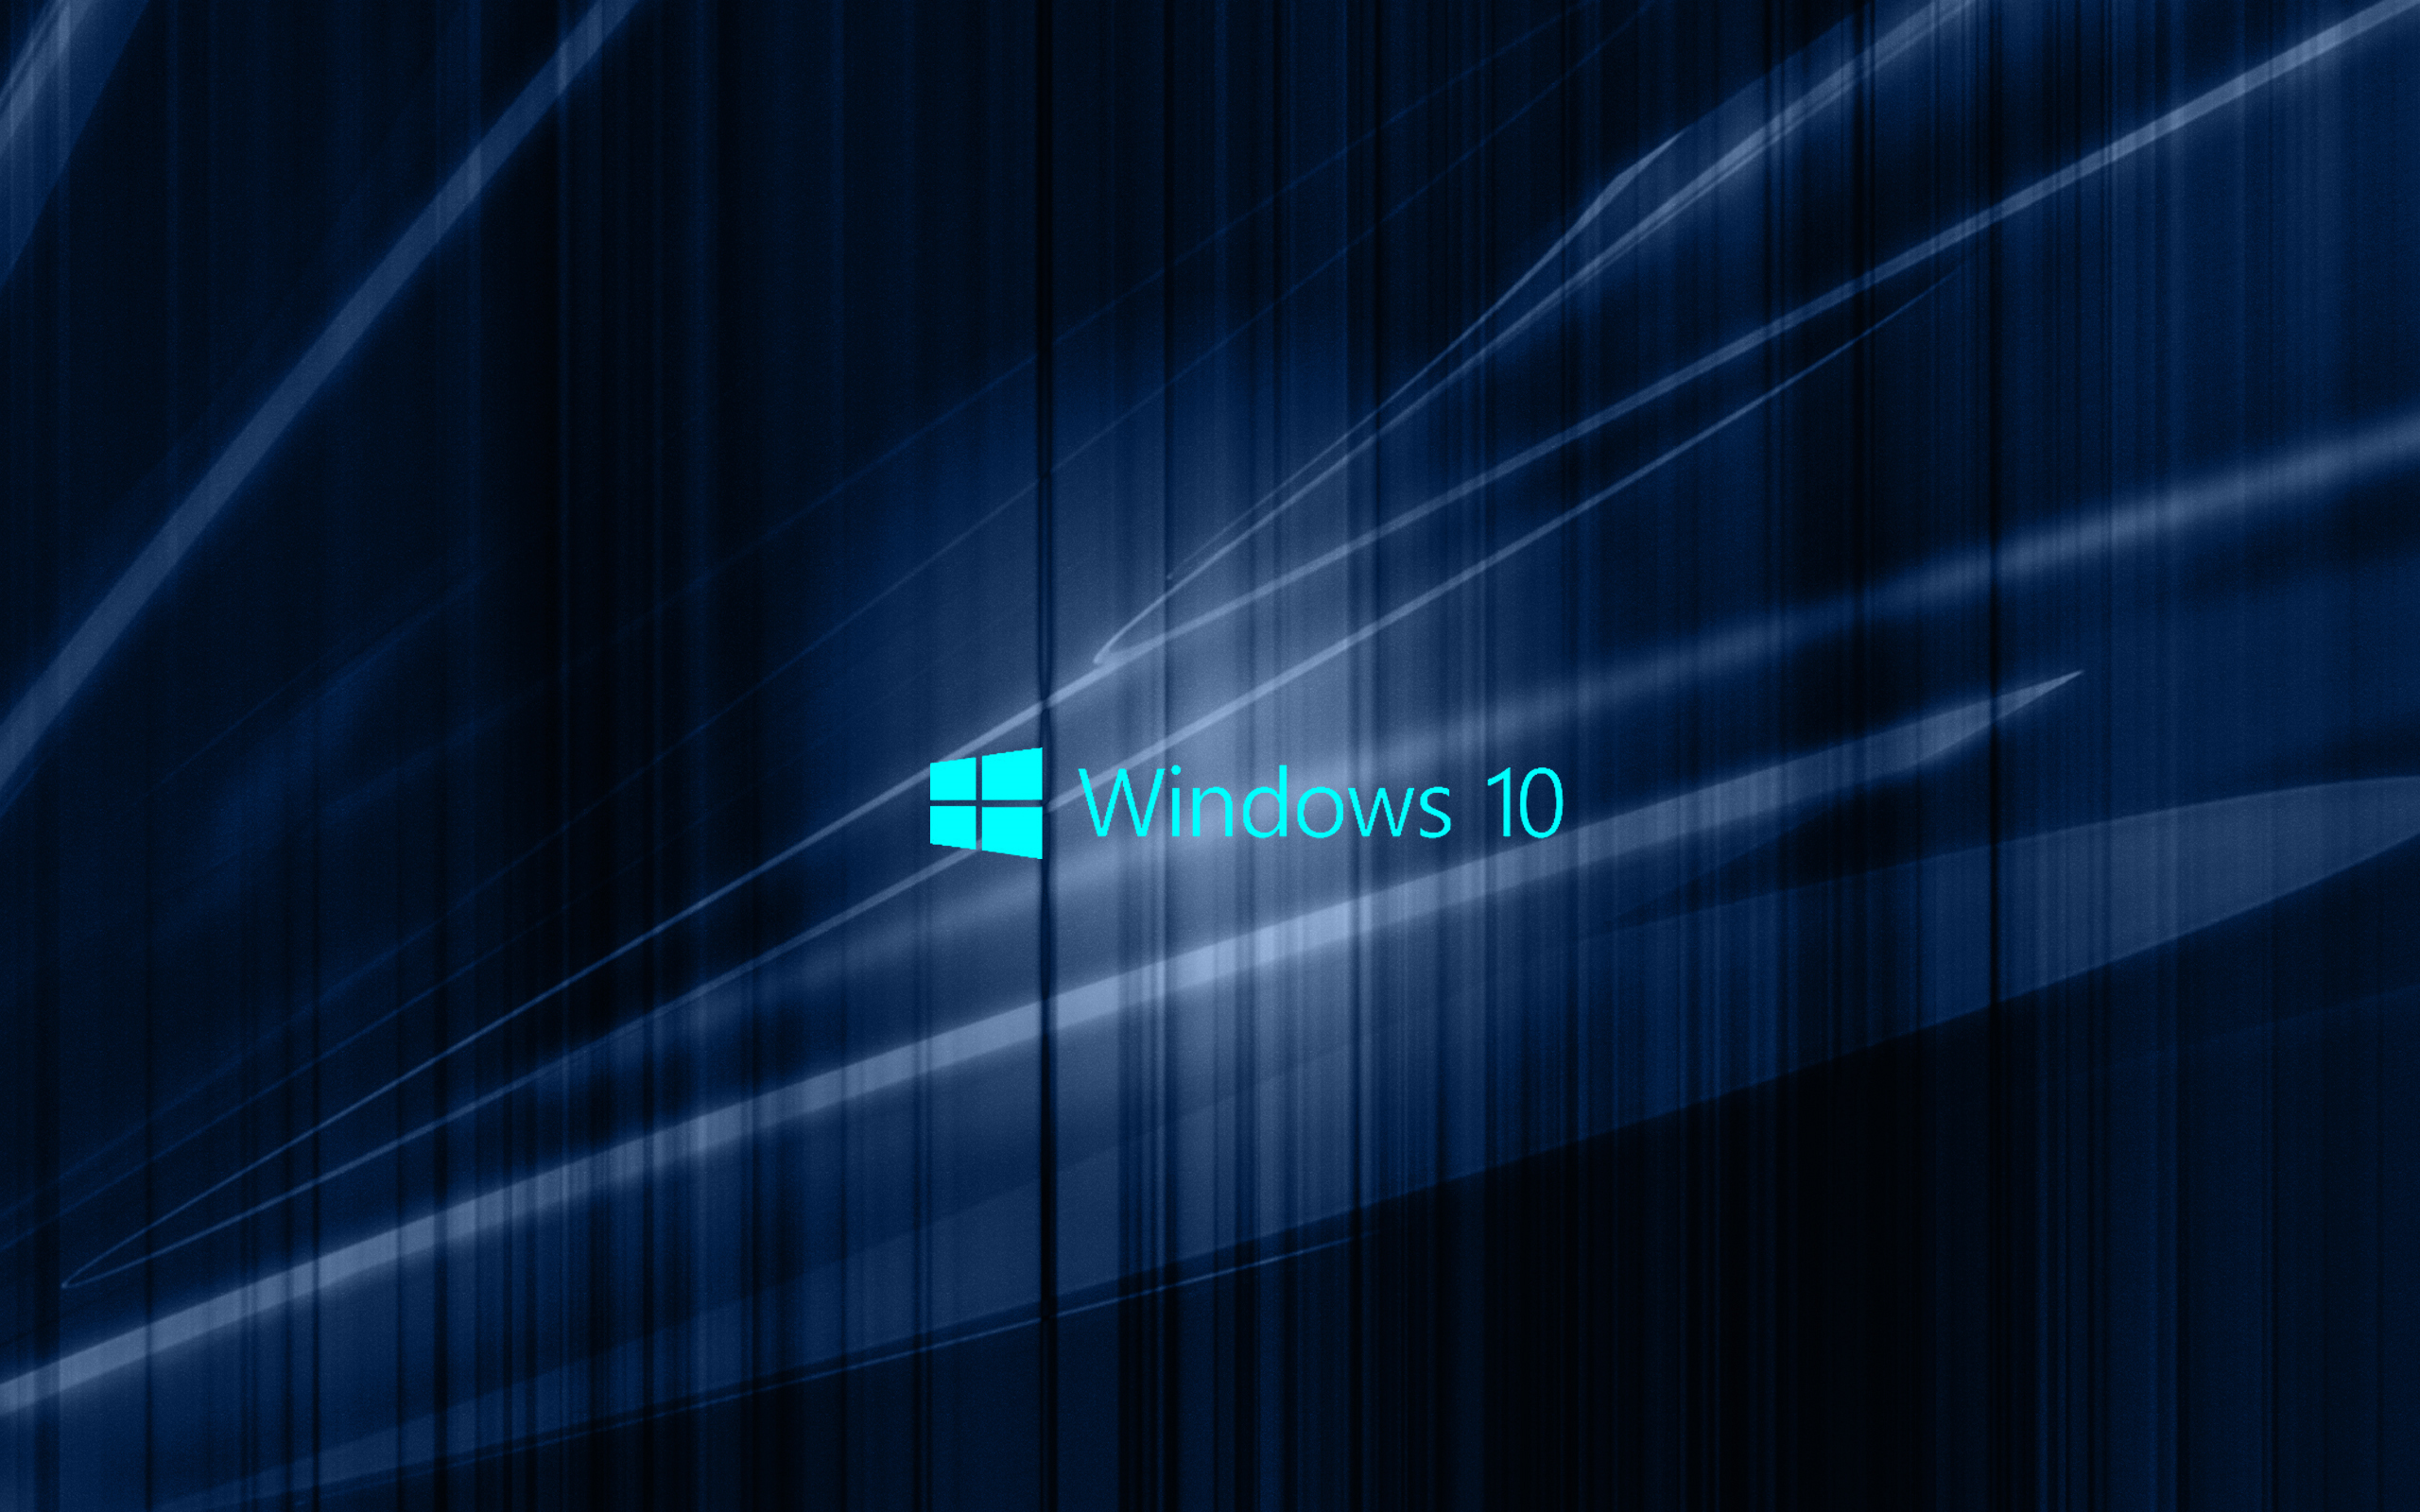 hd wallpapers for windows 10 pixelstalk net